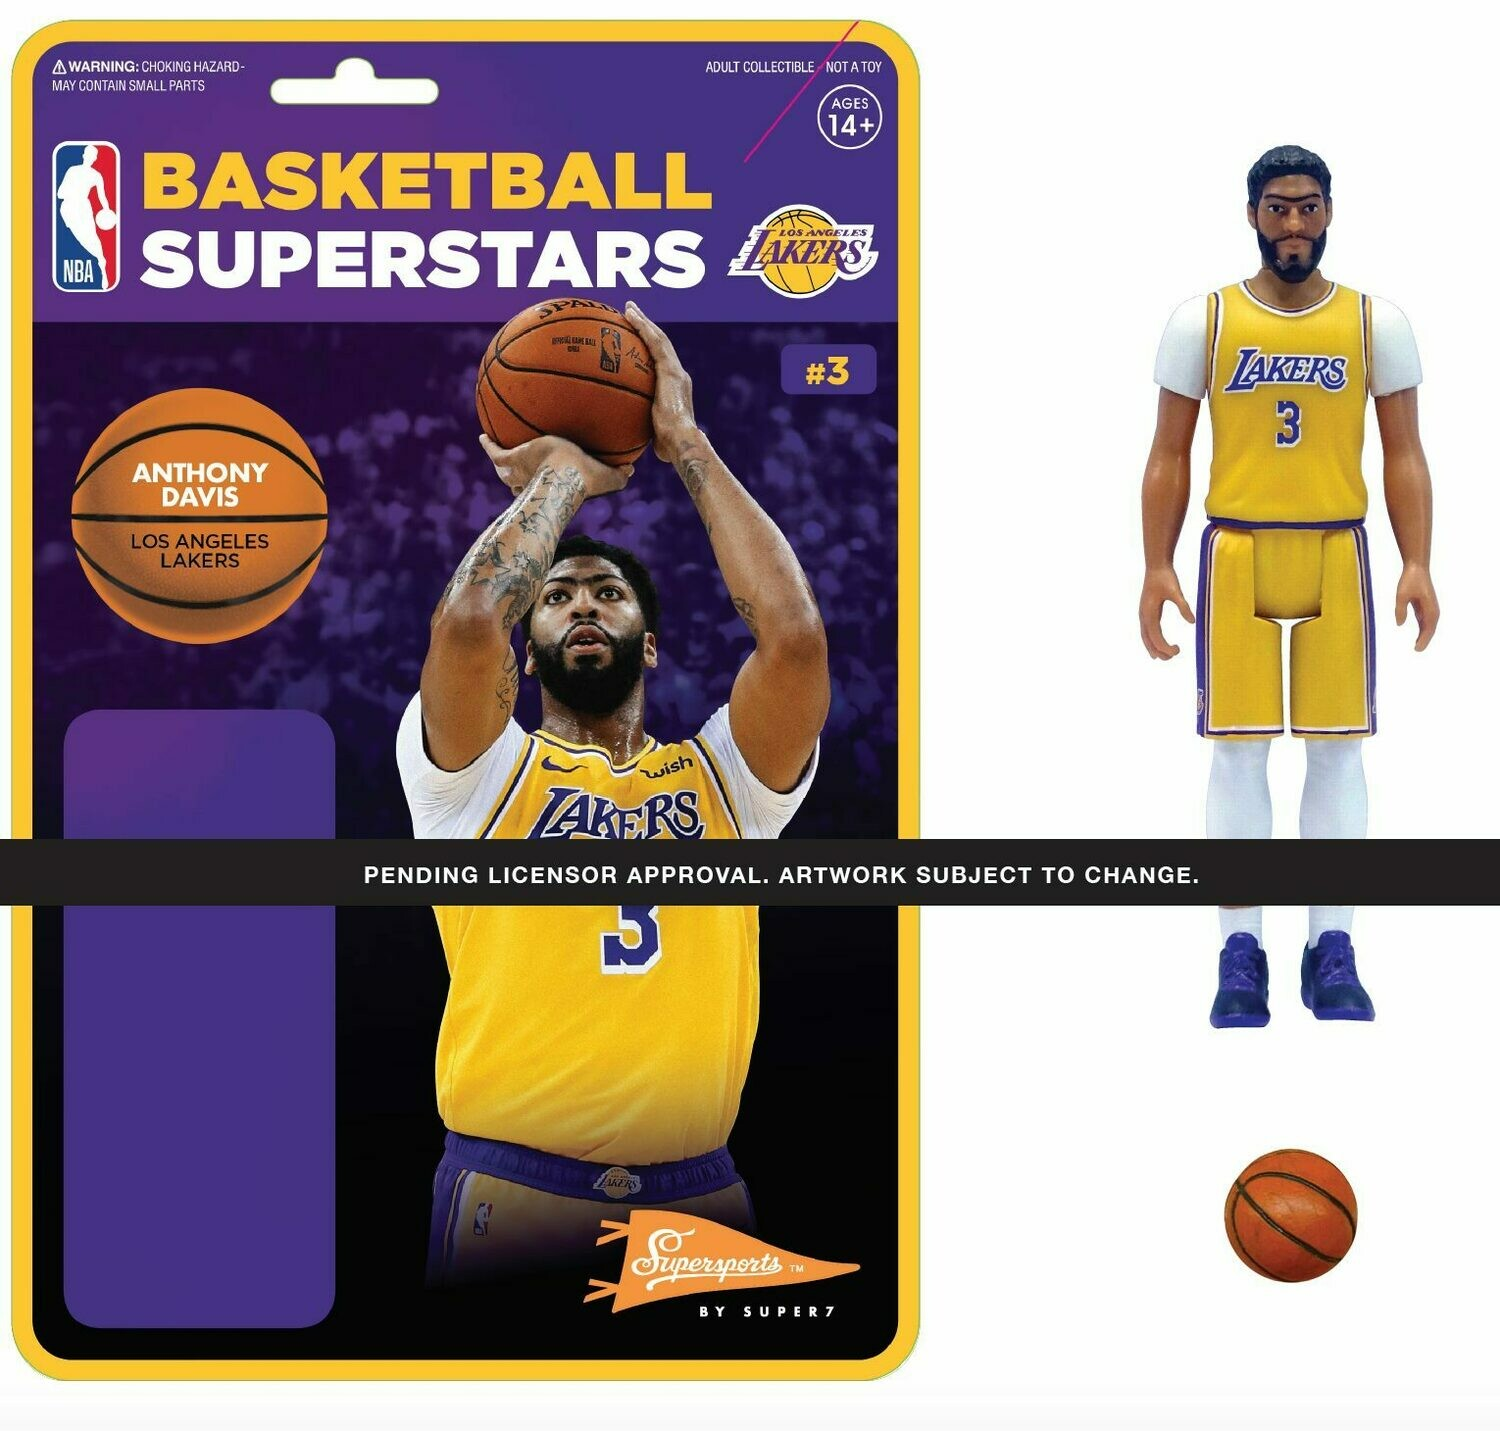 PRE-ORDER NBA REACTION FIGURE - ANTHONY DAVIS (LAKERS)